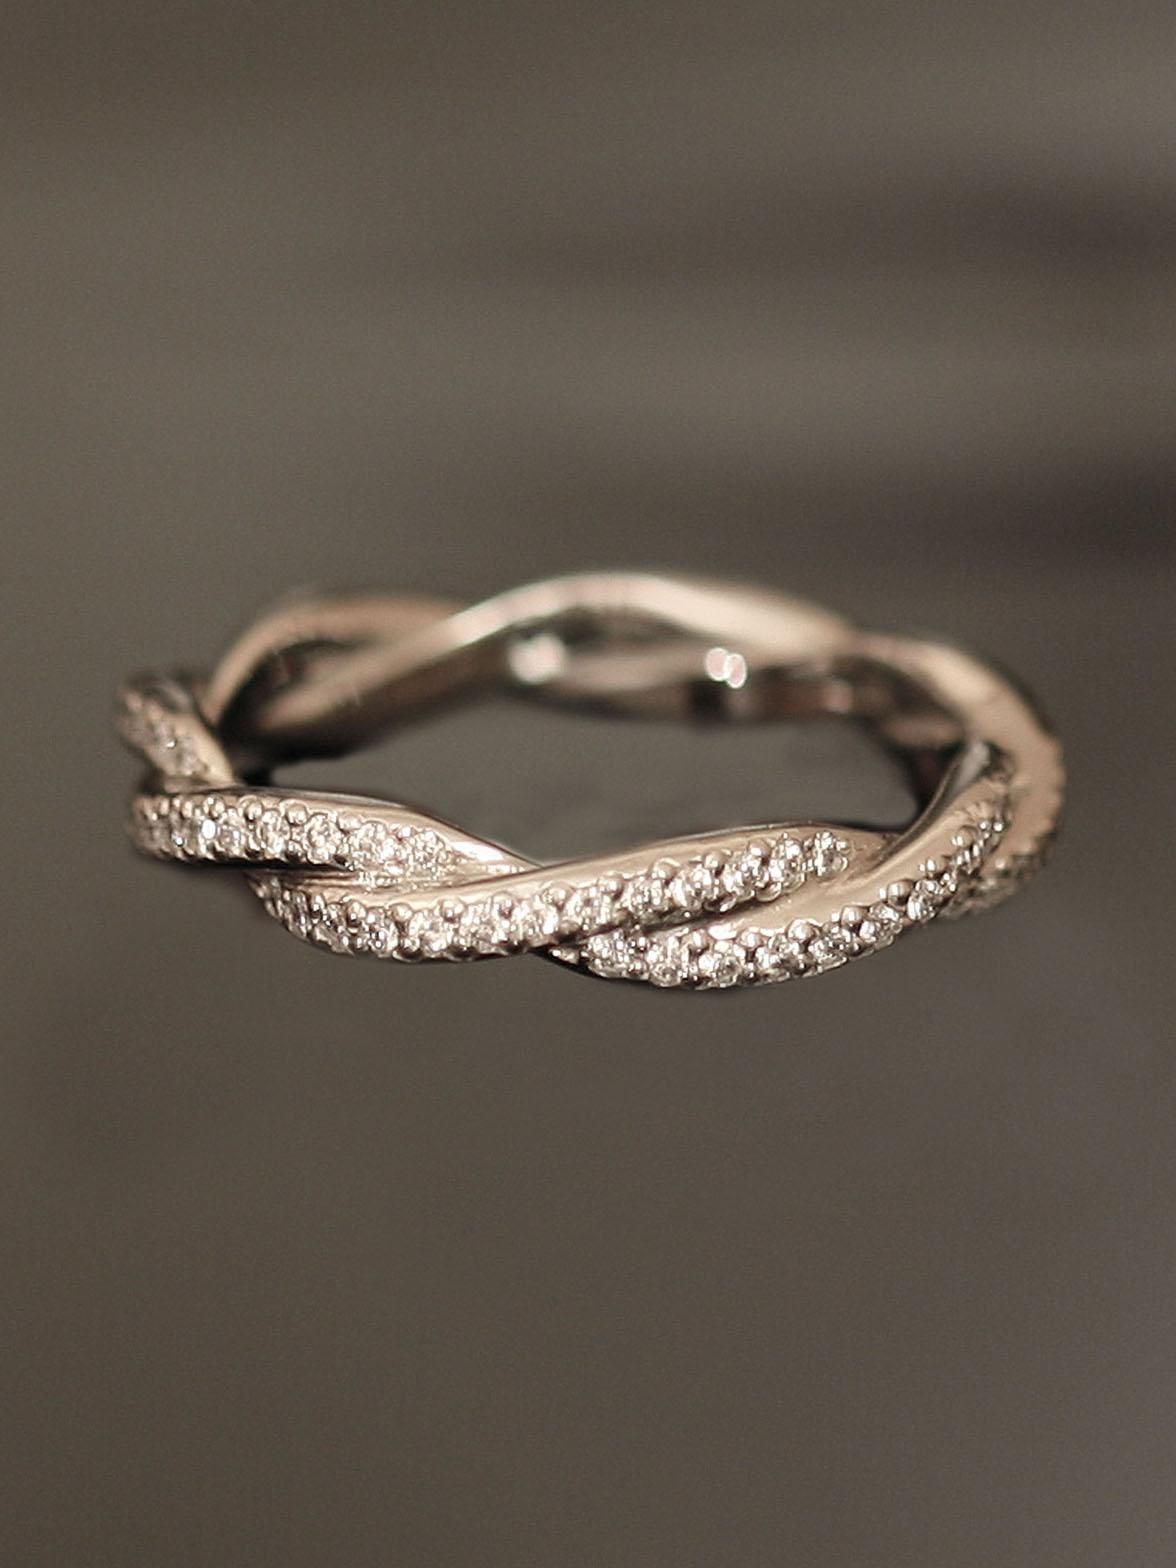 michael b. - platinum double twist eternity band